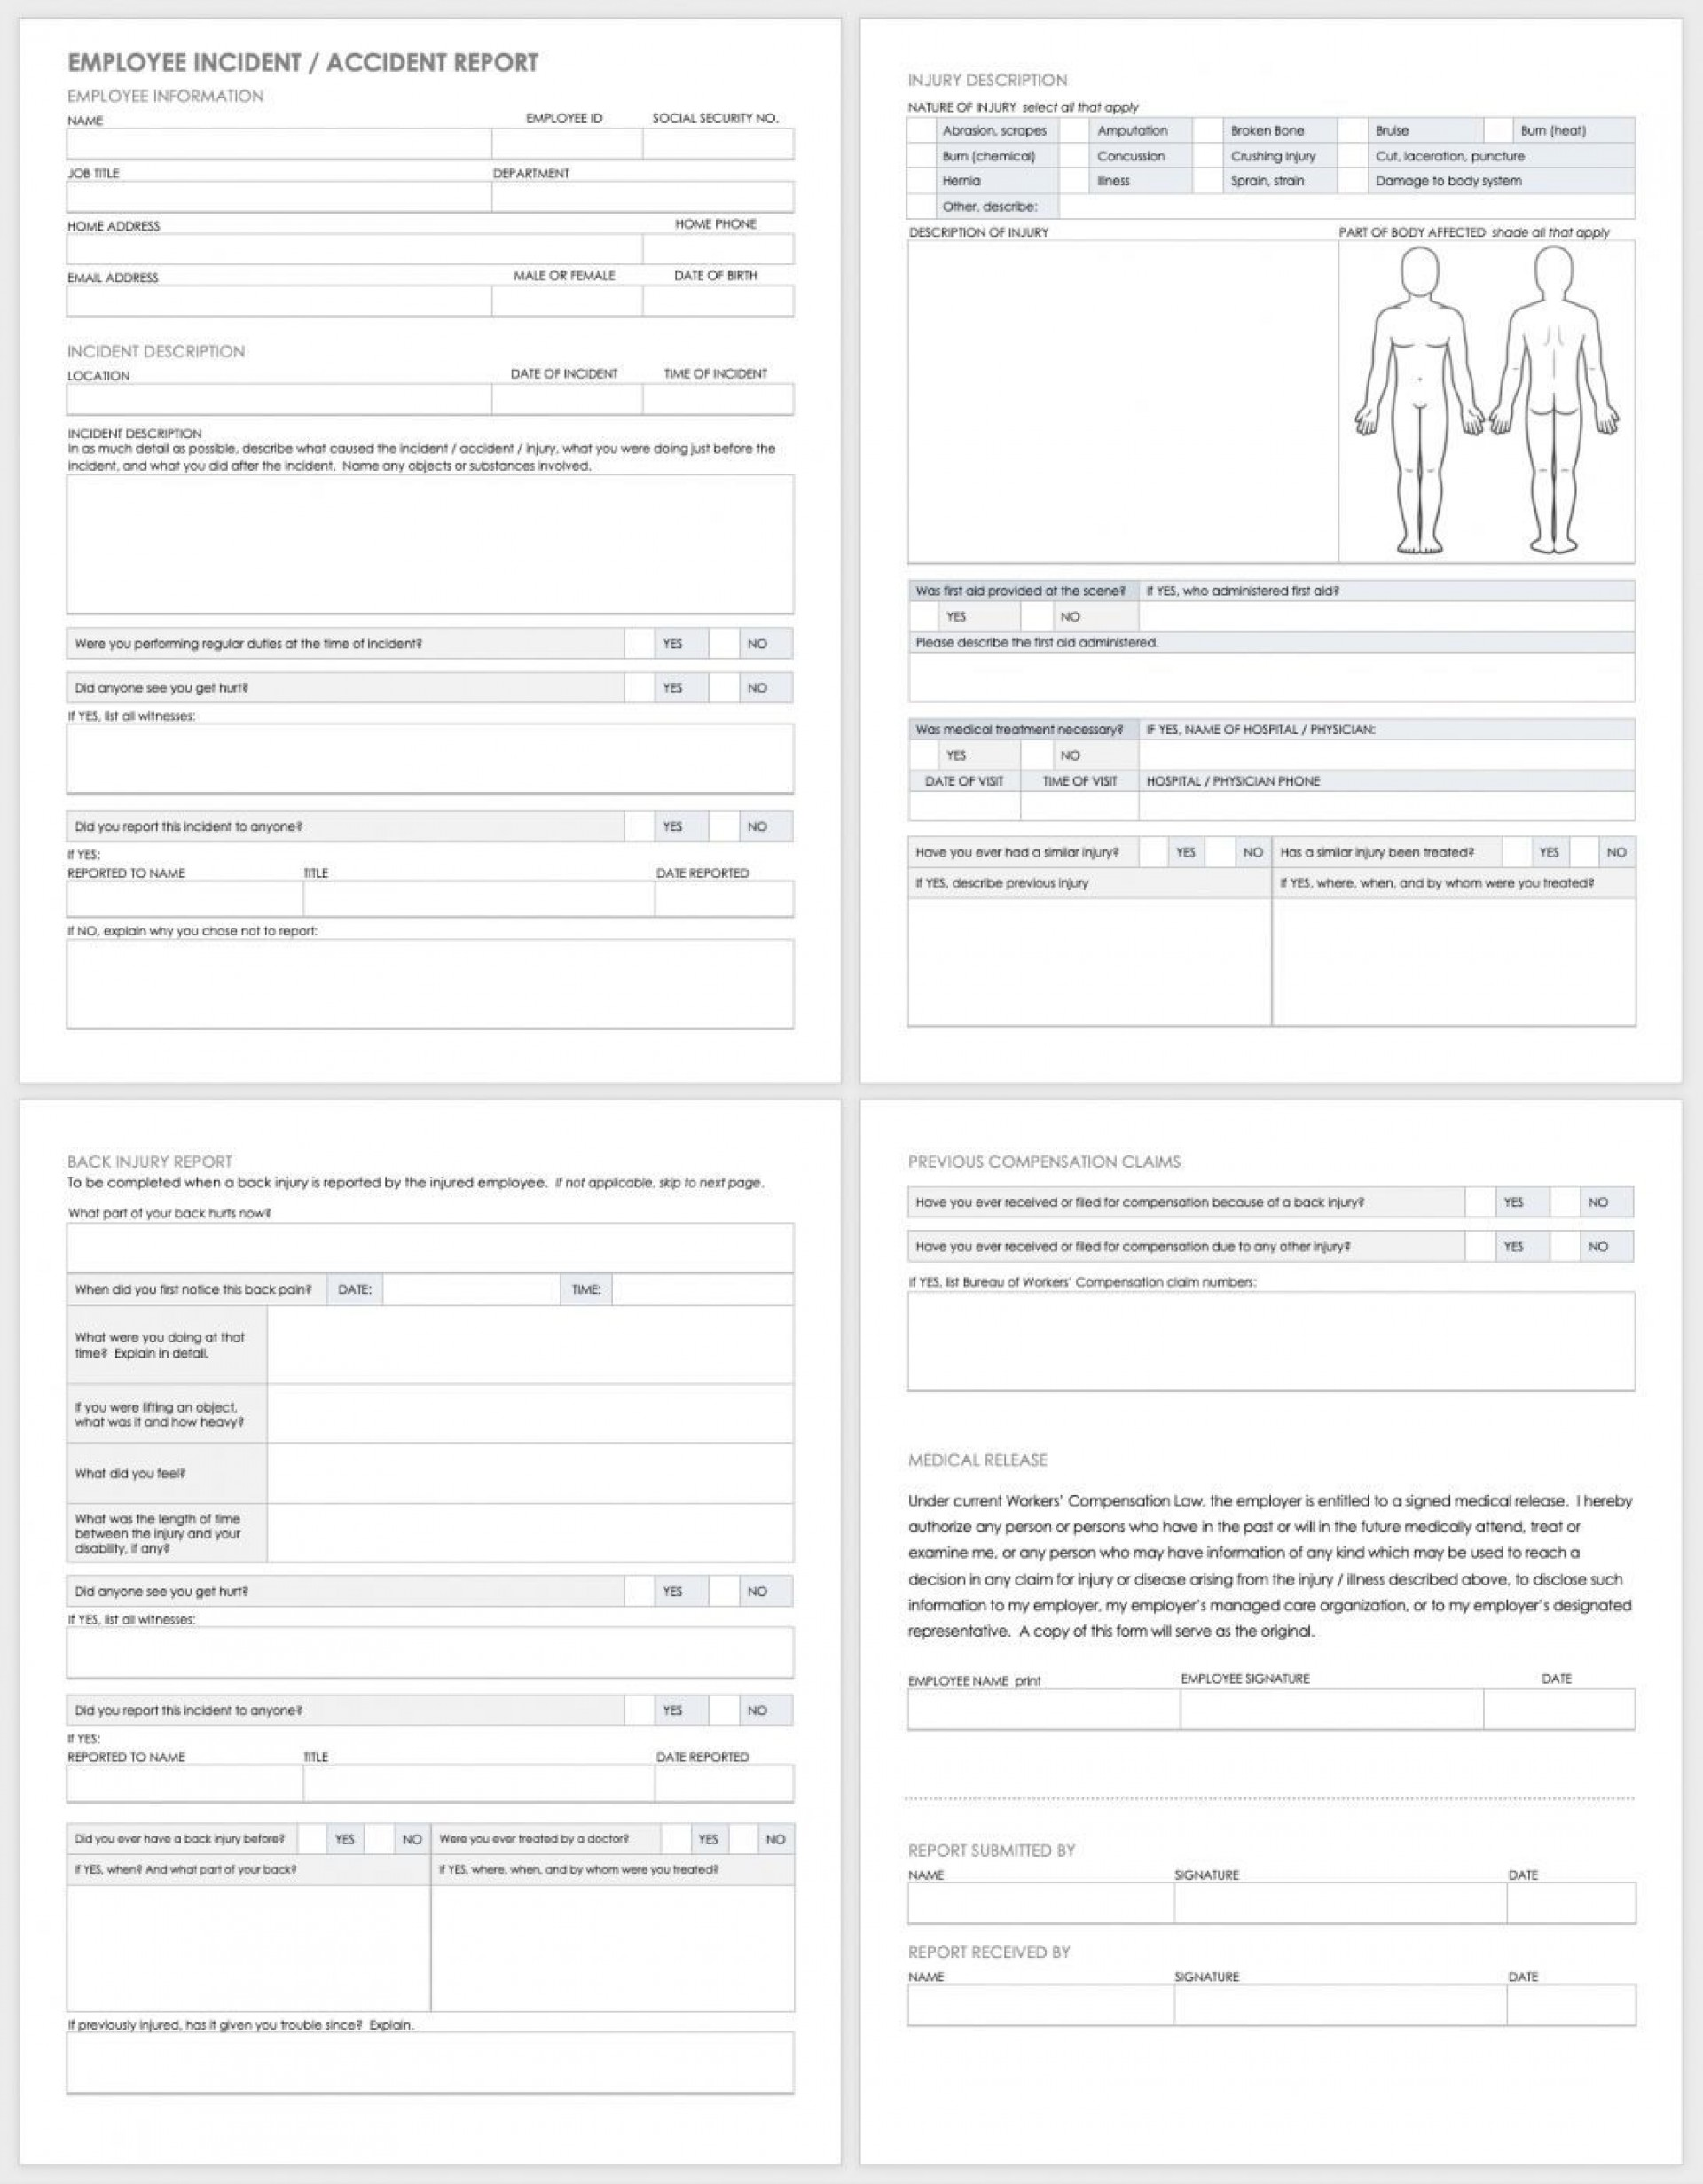 004 Staggering Workplace Incident Report Template Uk Inspiration 1920